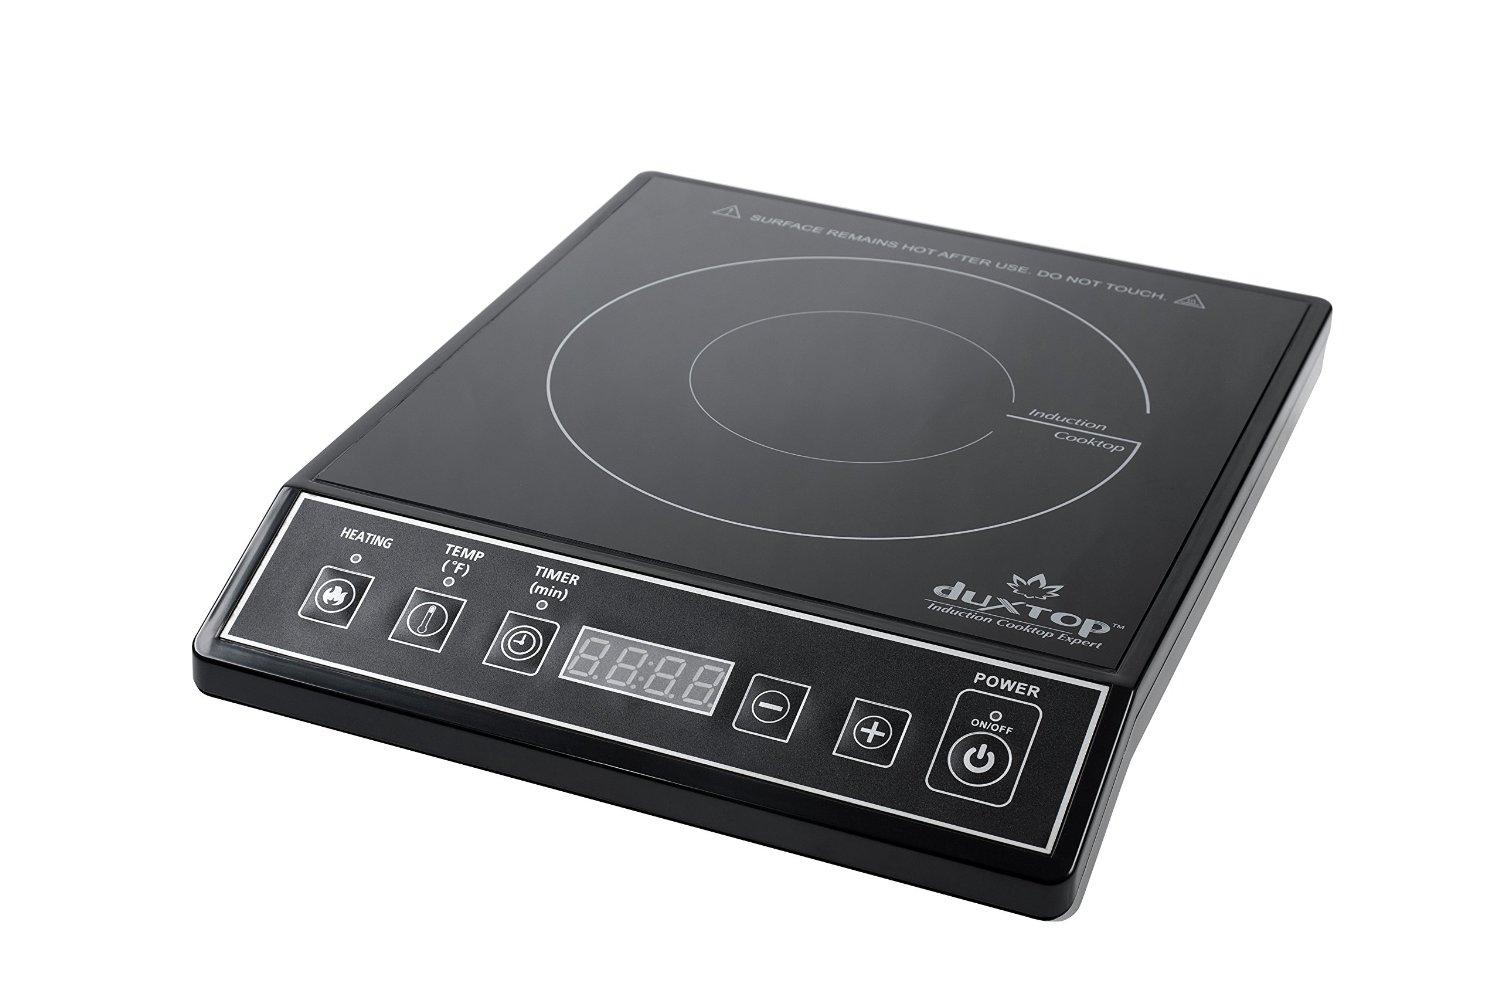 ... Induction Cooktop Countertop Burner 9100MC: Amazon.ca: Home & Kitchen